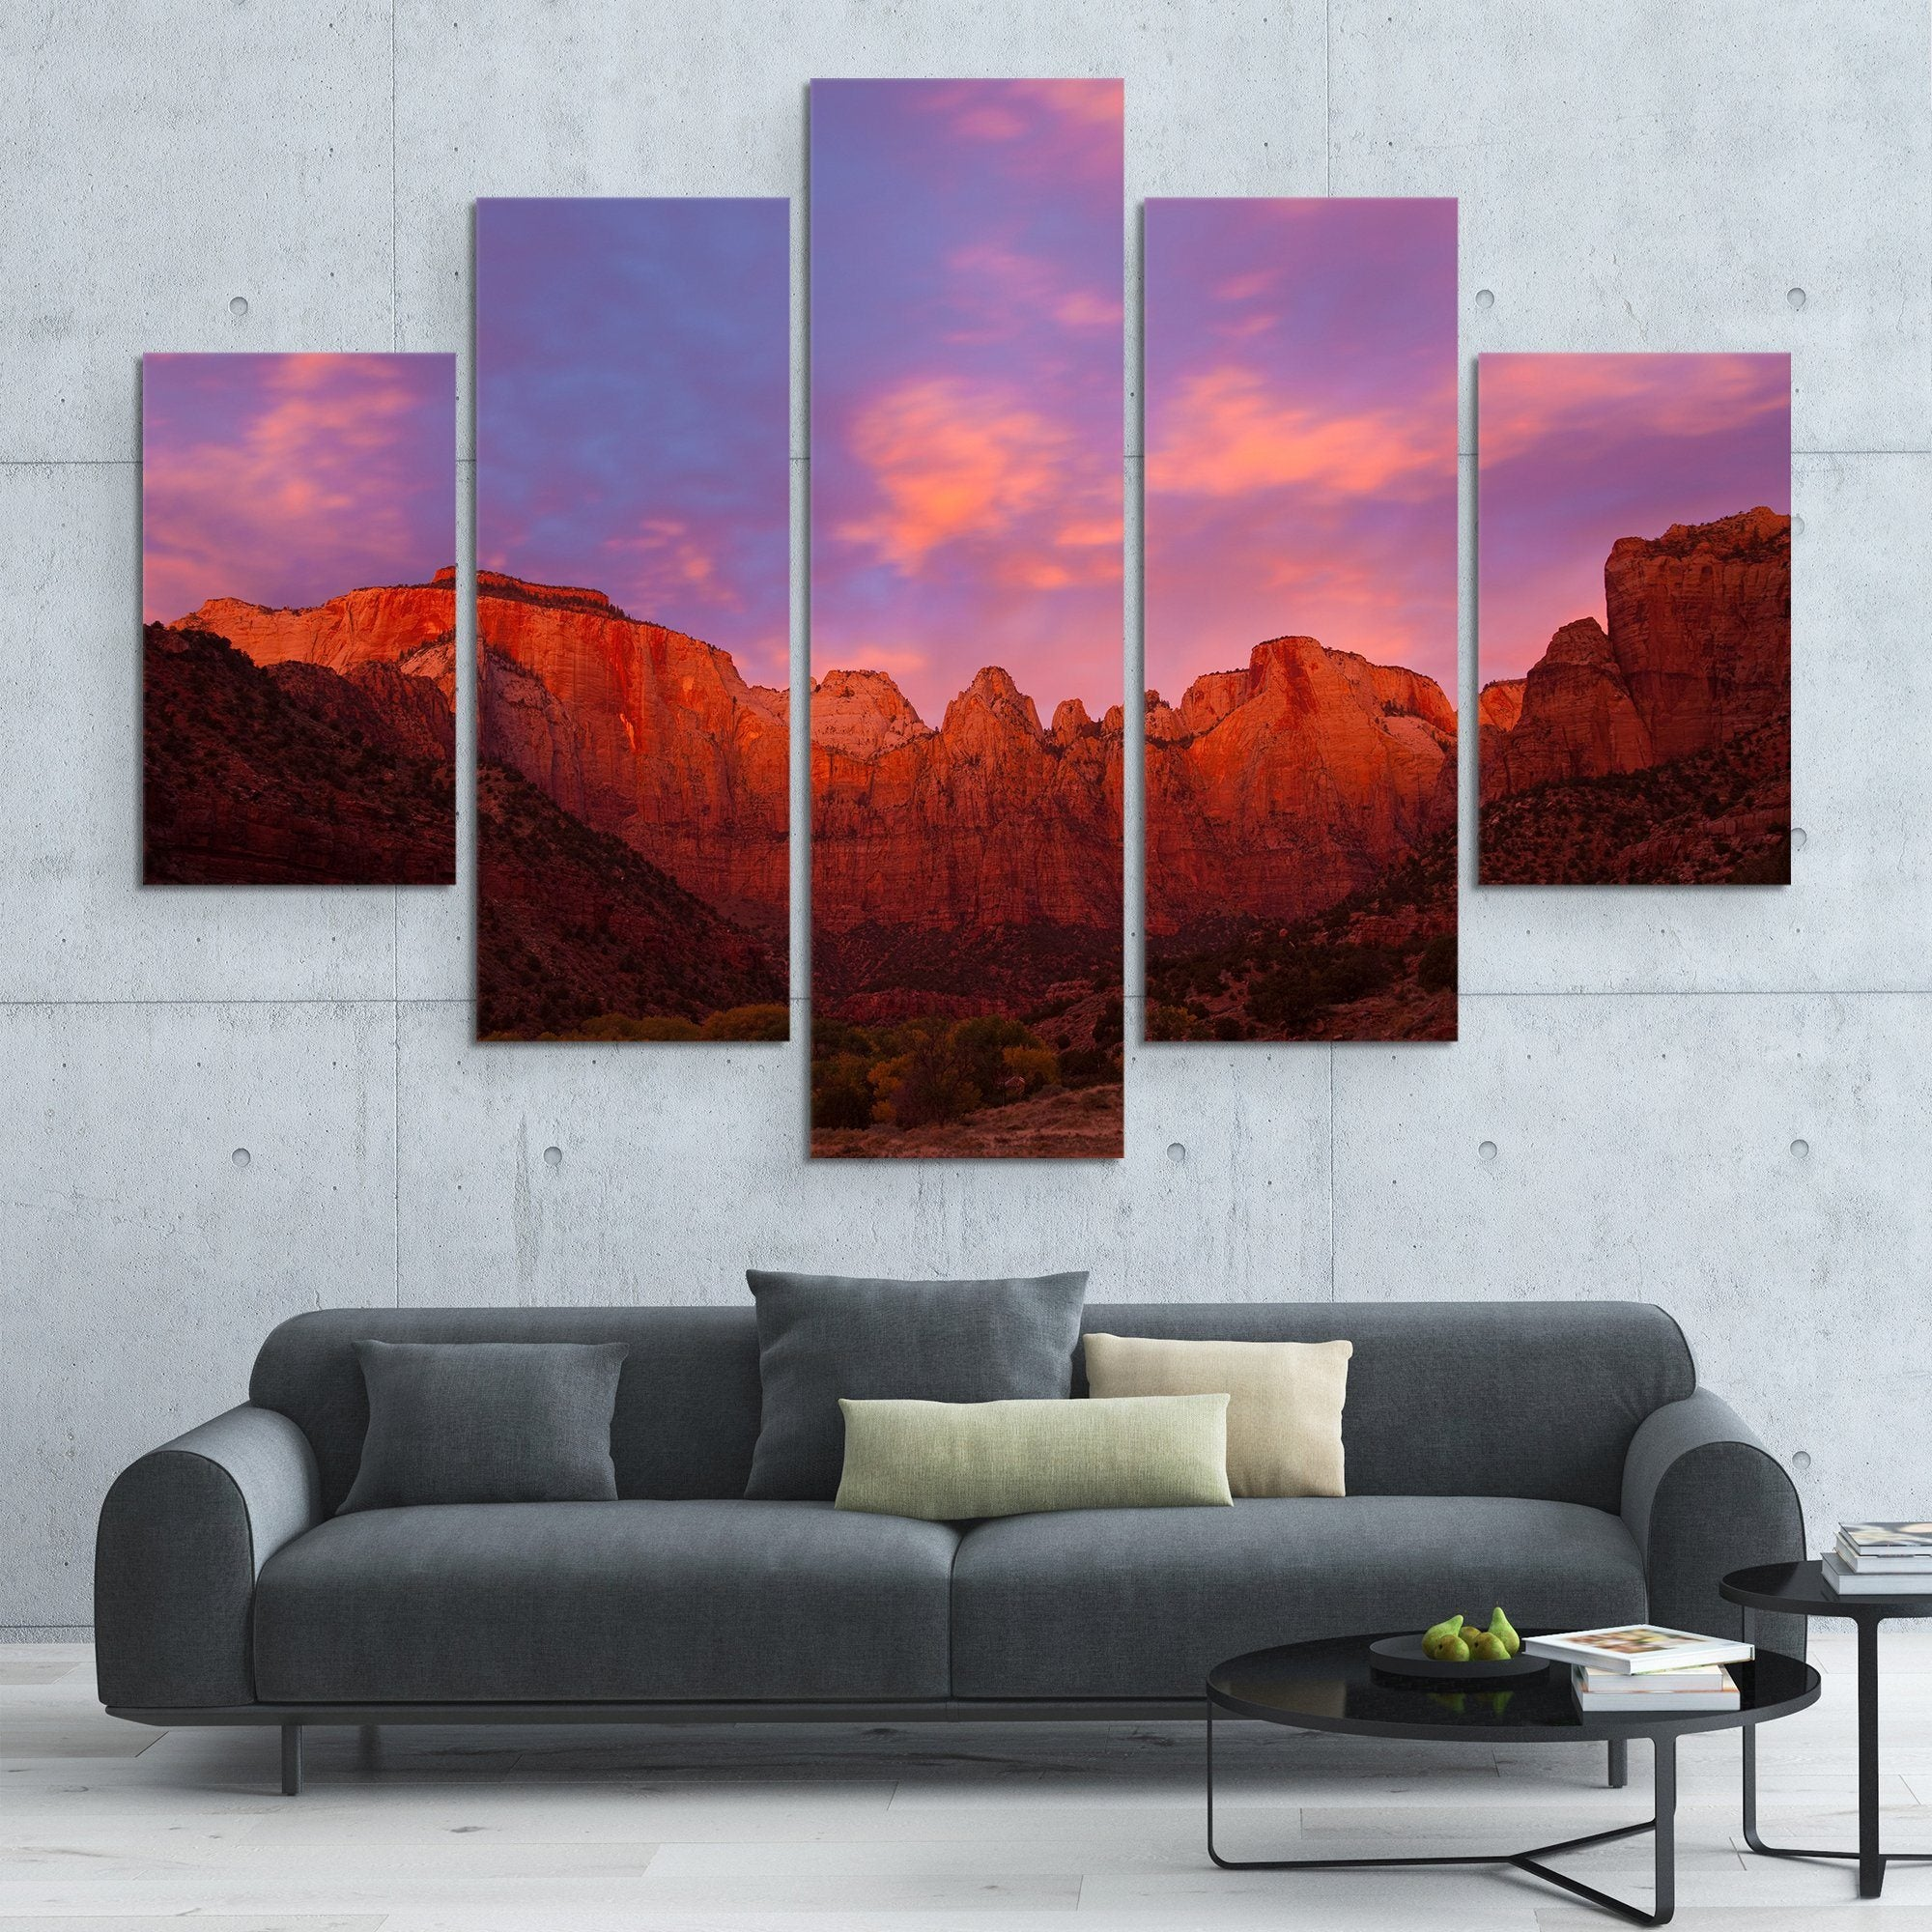 Towers of Virgin wall art  5 piece